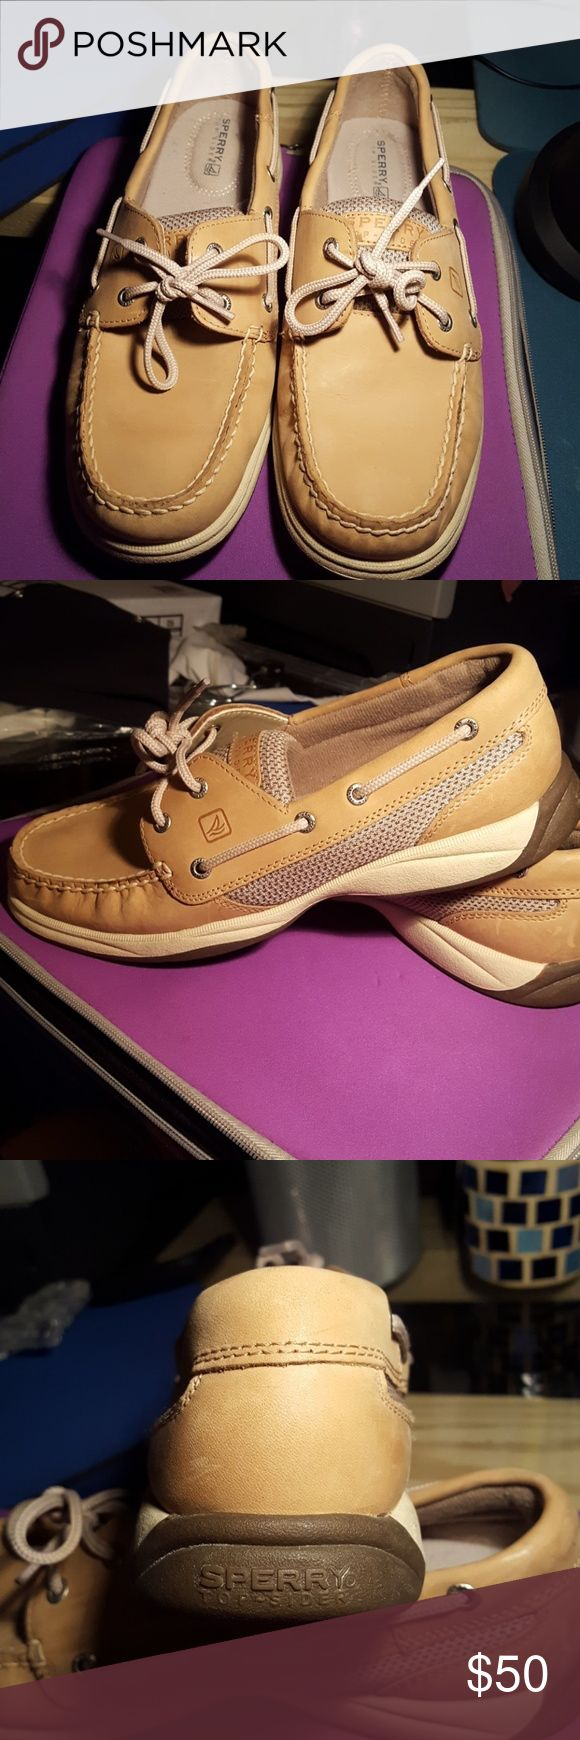 New Sperry Intrepid 2Eye Boat Shoes SALE Leather Sperry Intrepid 2Eye Boat Shoes .  Color is Linen/Oat in New condition. No box. Sperry Top-Sider Shoes